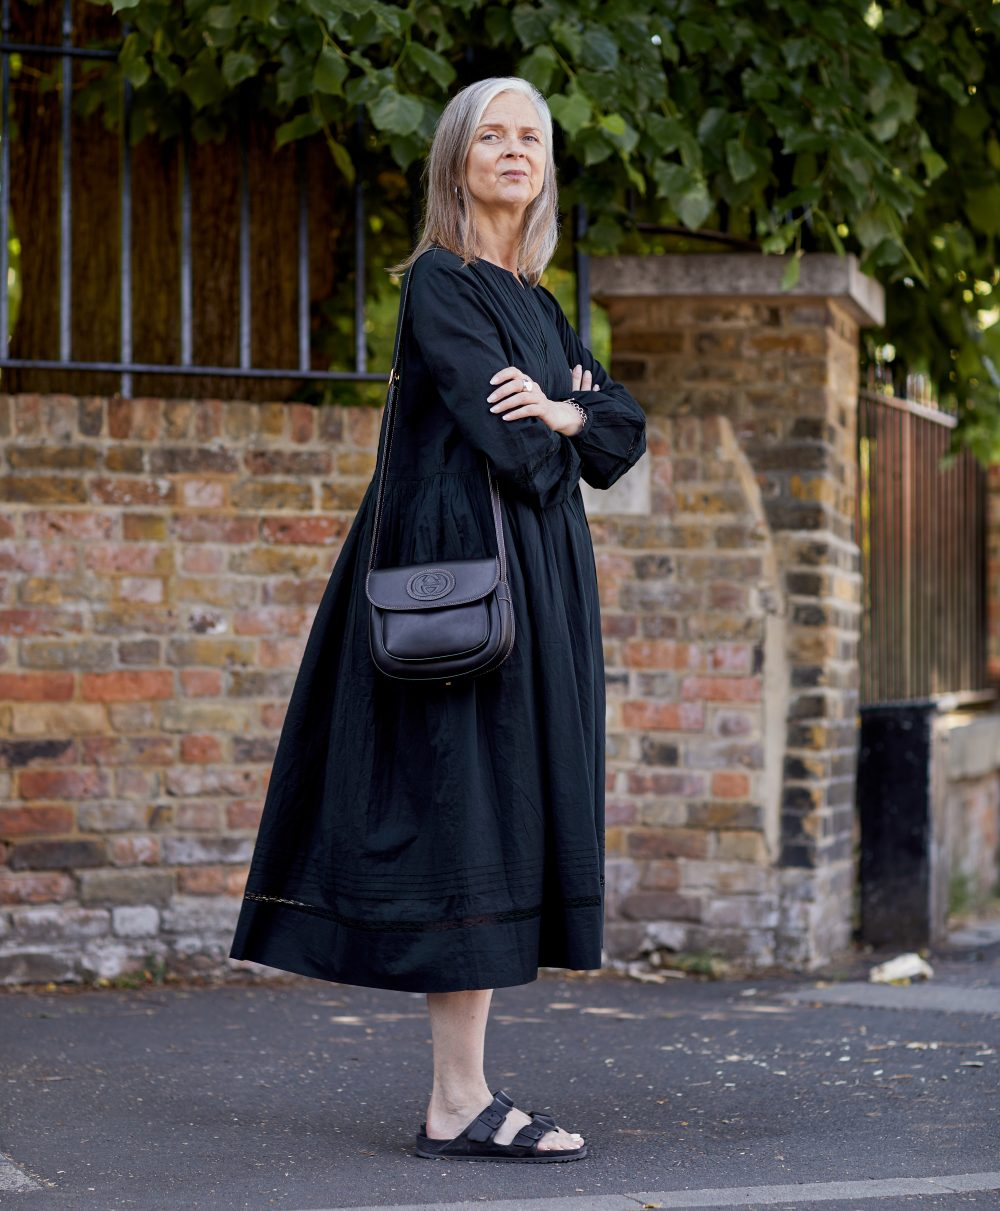 Yes, you can wear a black dress on a hot day